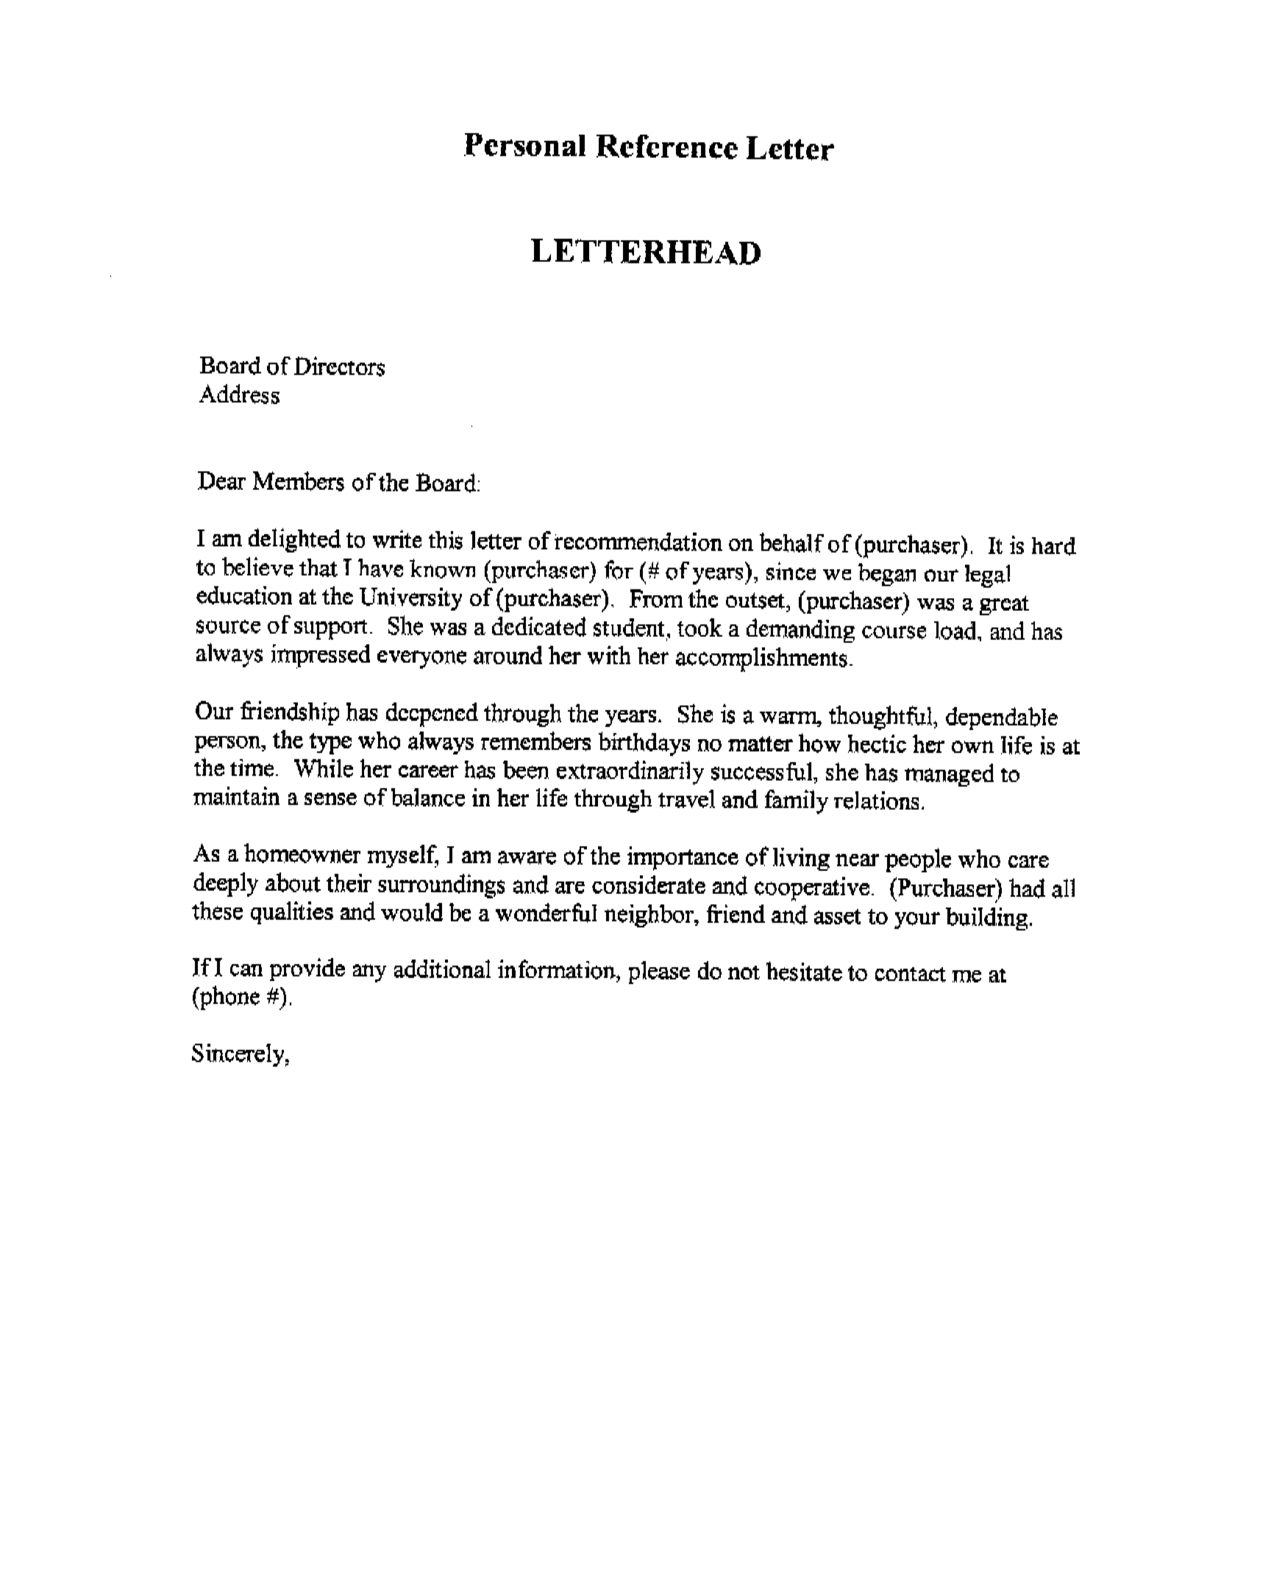 Professional recommendation letter this is an example of a professional recommendation letter this is an example of a professional recommendation written for an employee spiritdancerdesigns Image collections